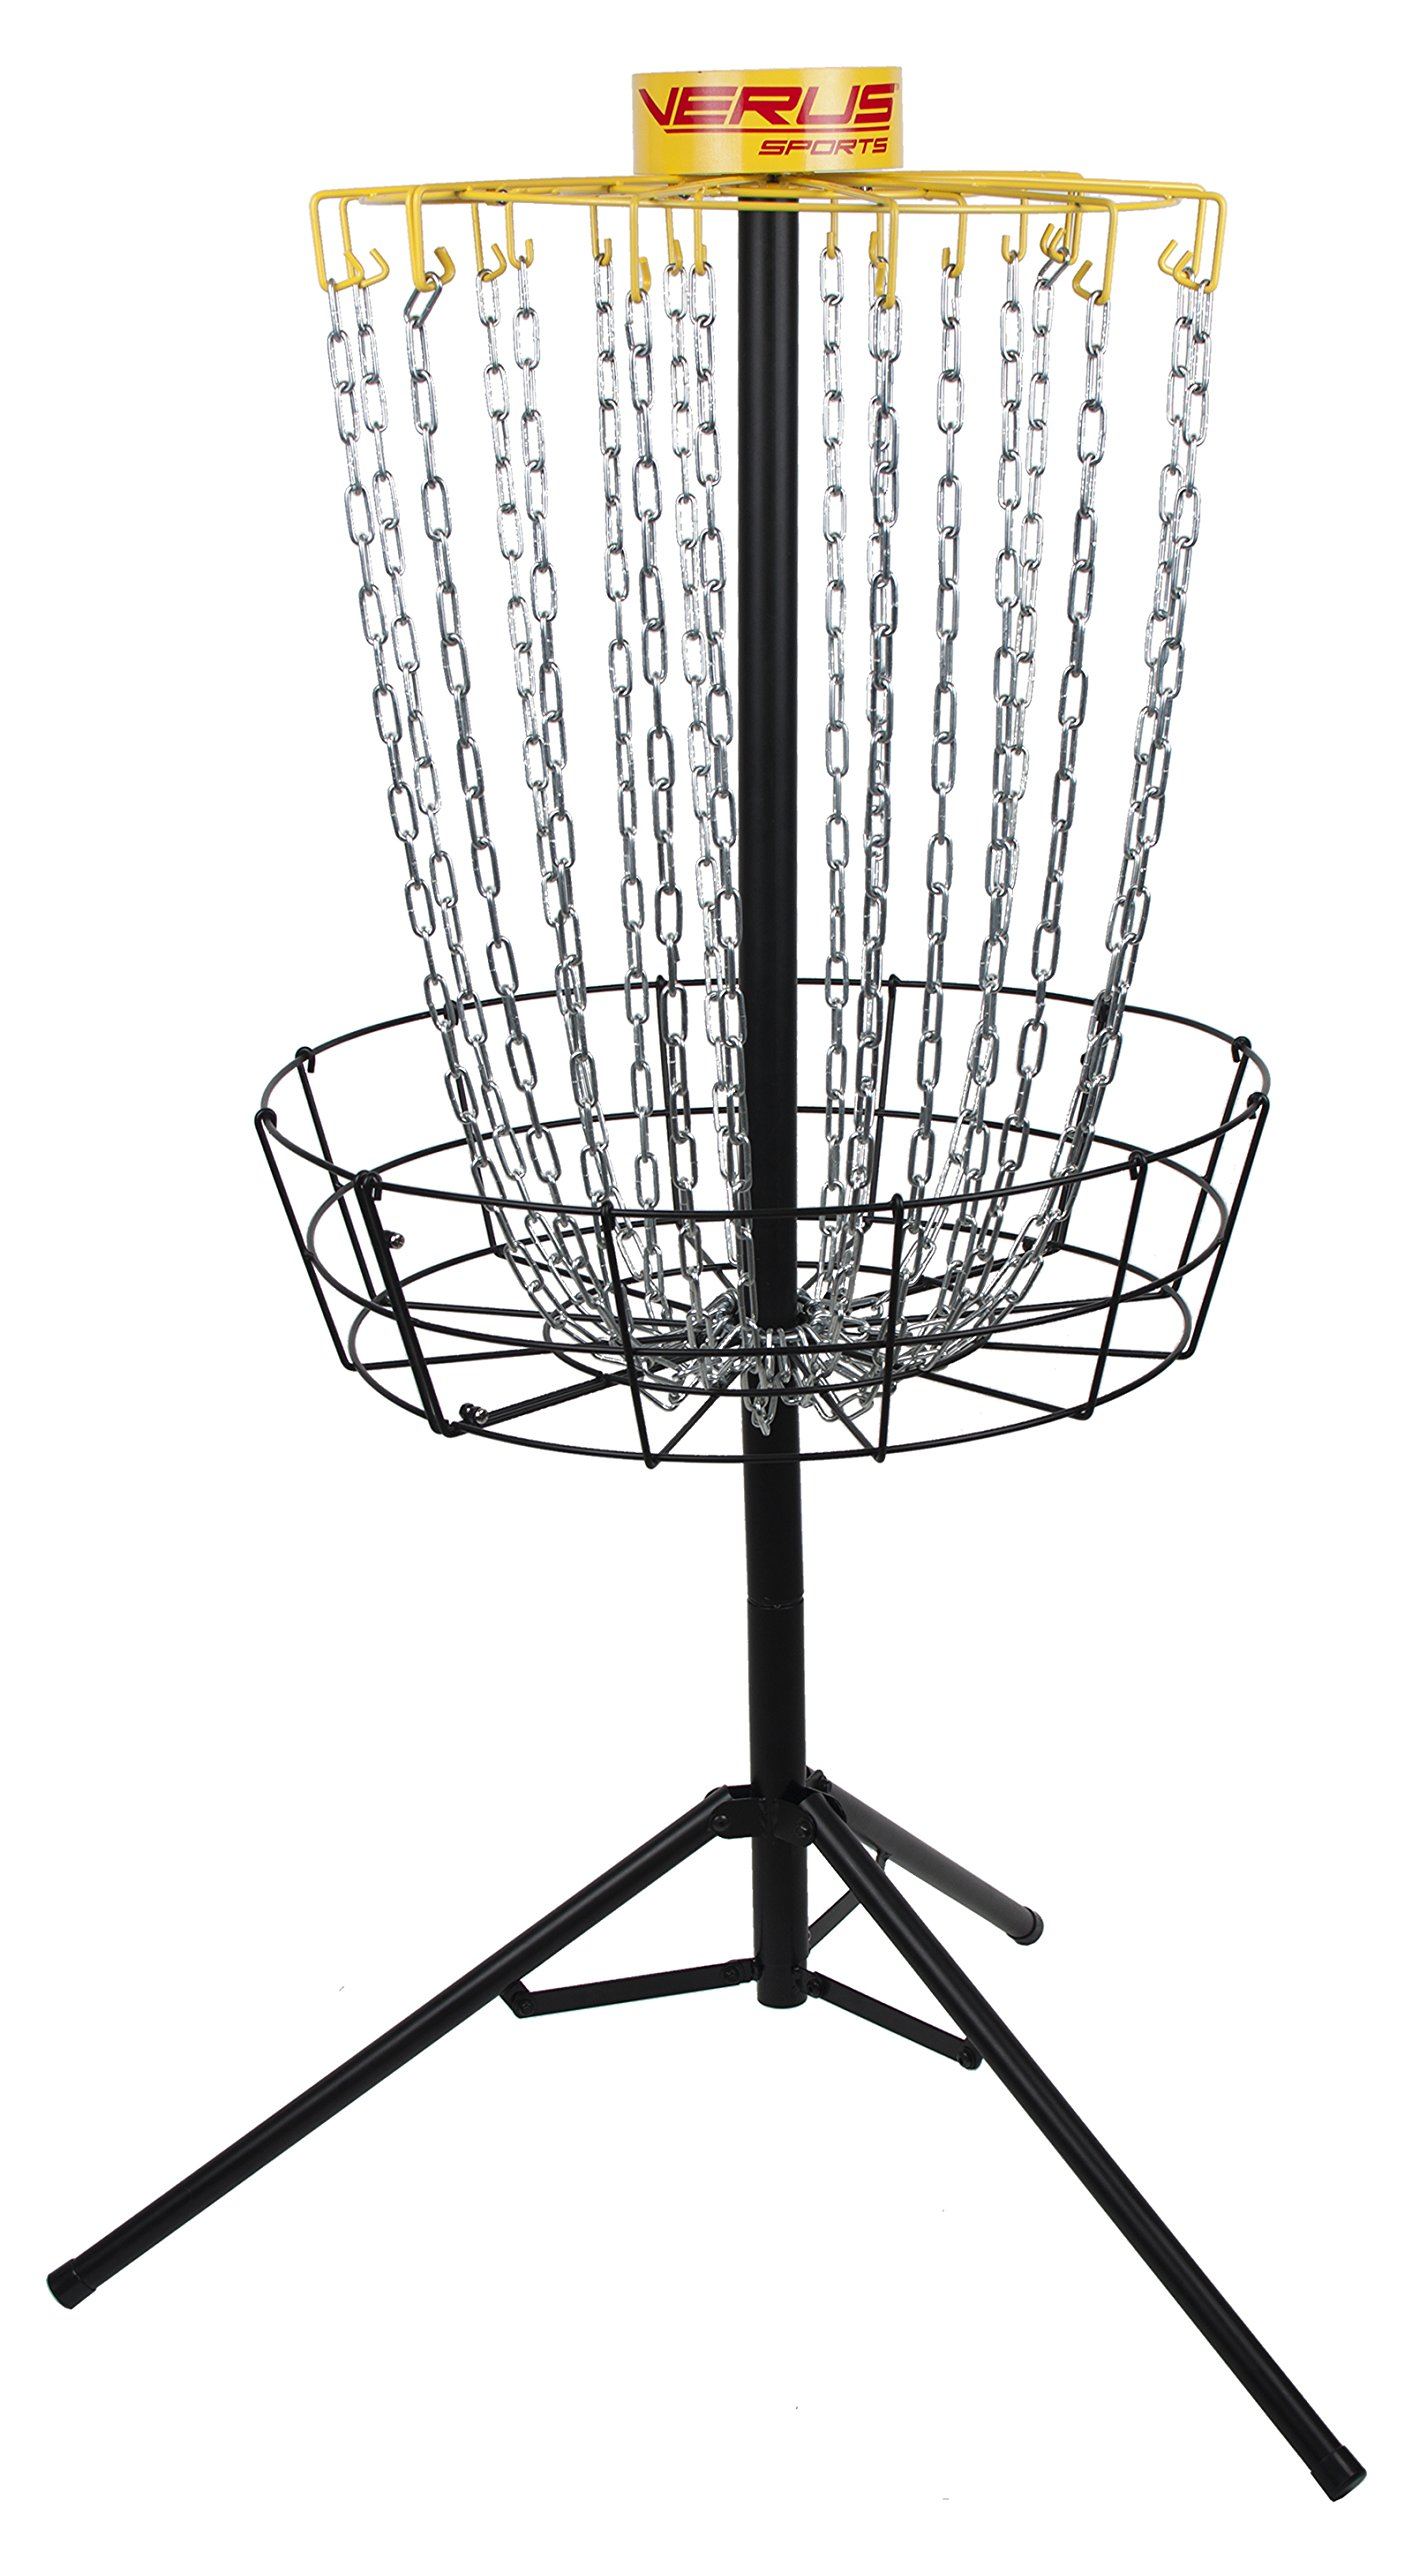 Verus Sports TG460 Regulation Expert Disc Golf Basket, Yellow by Verus Sports